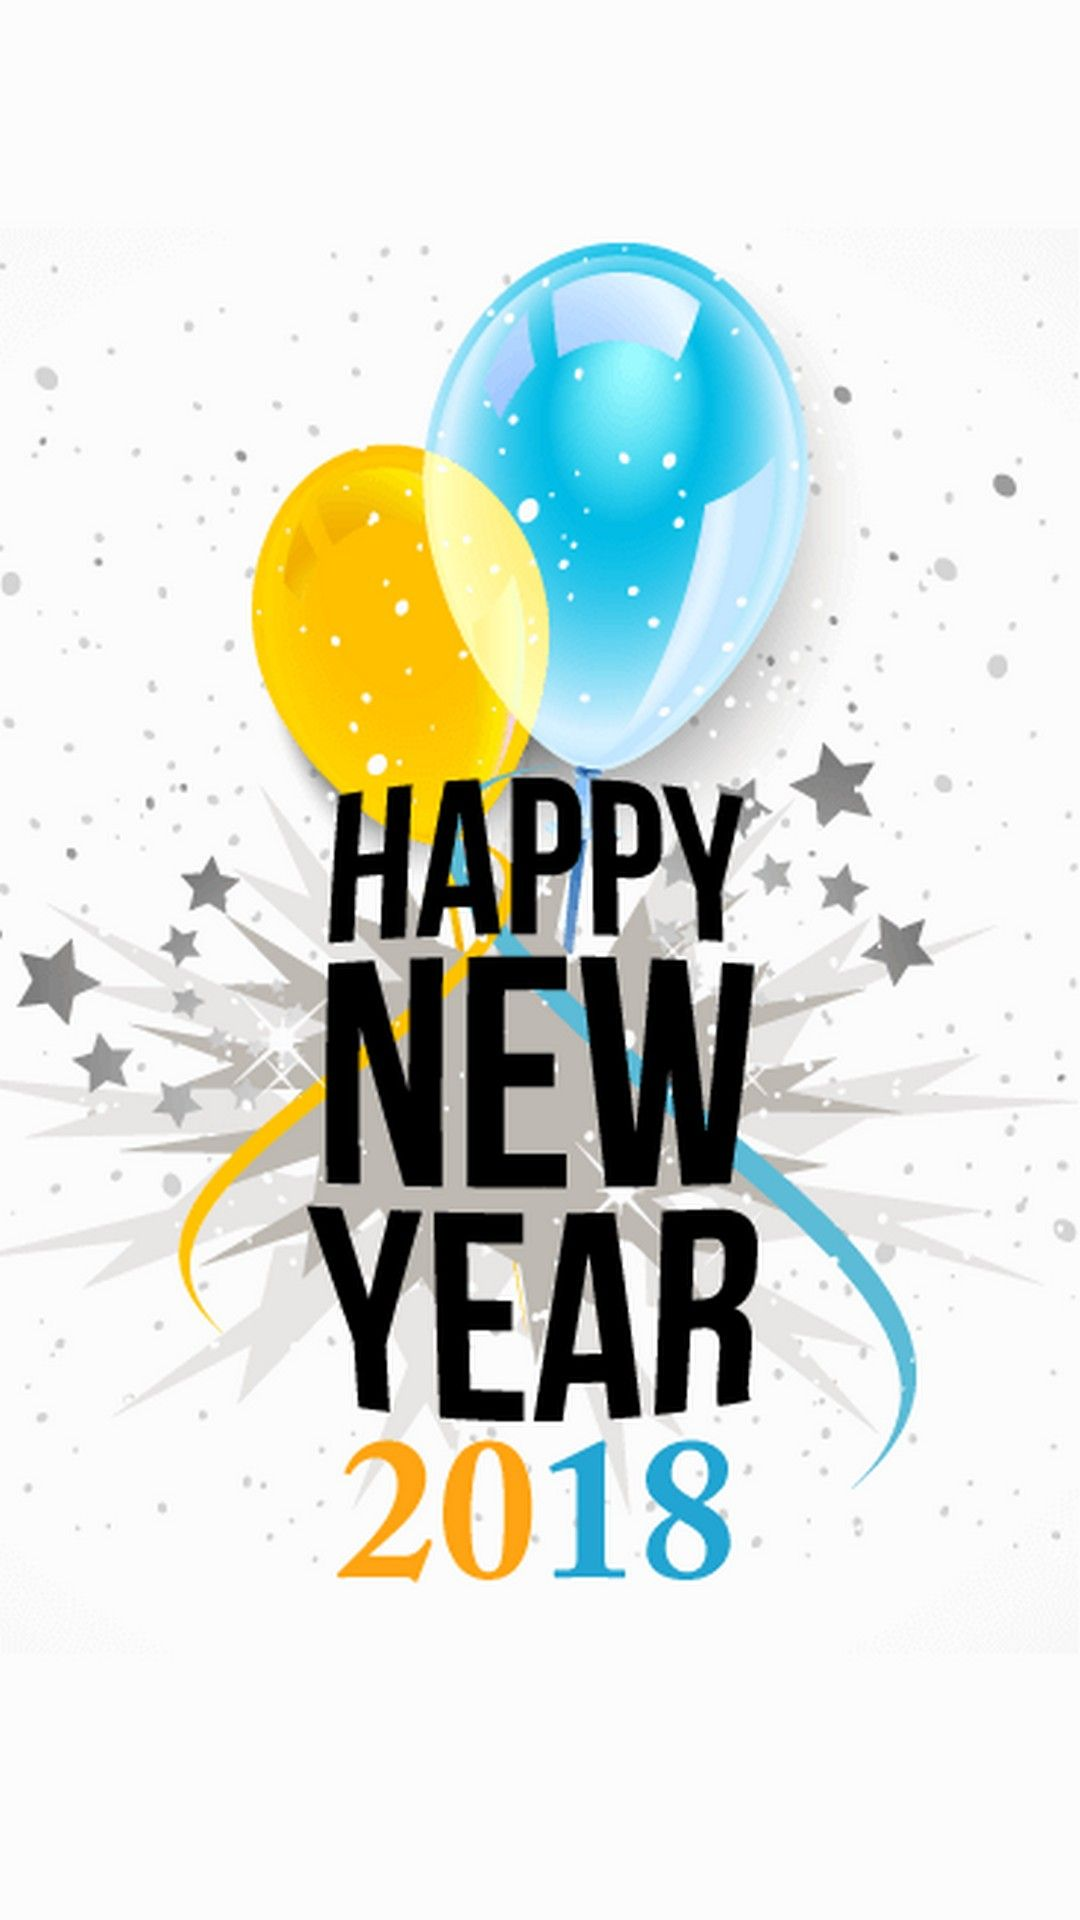 happy new year 2018 iphone wallpaper best iphone wallpaper